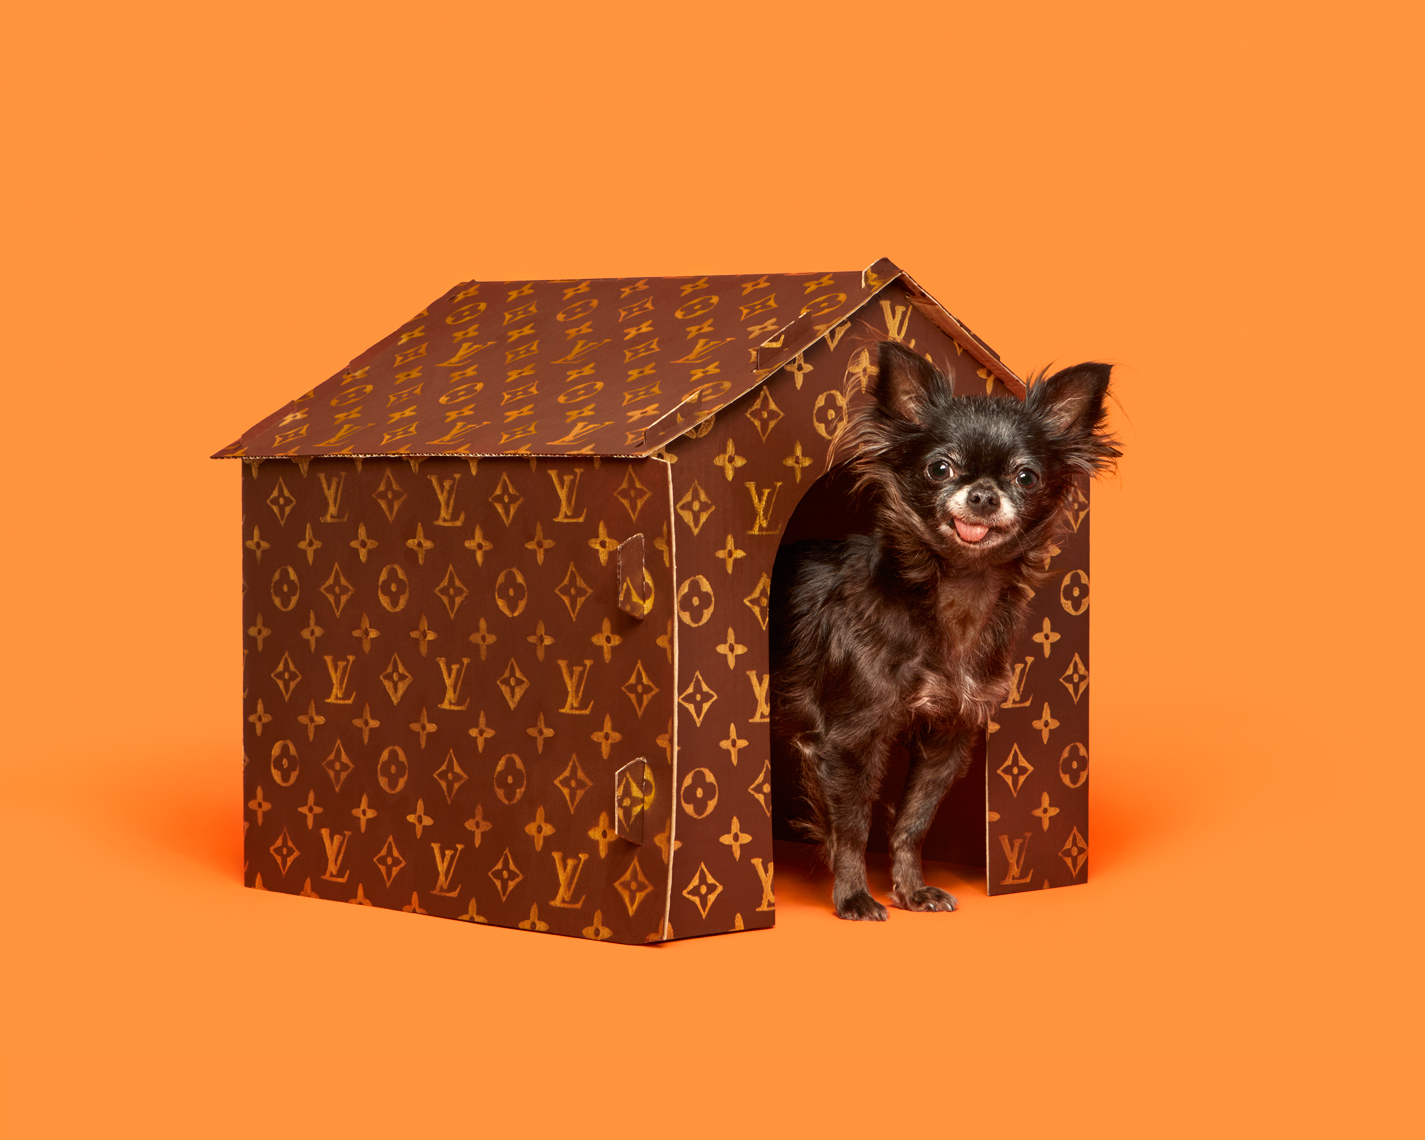 Chihuahua and Louis Vuitton Dog House